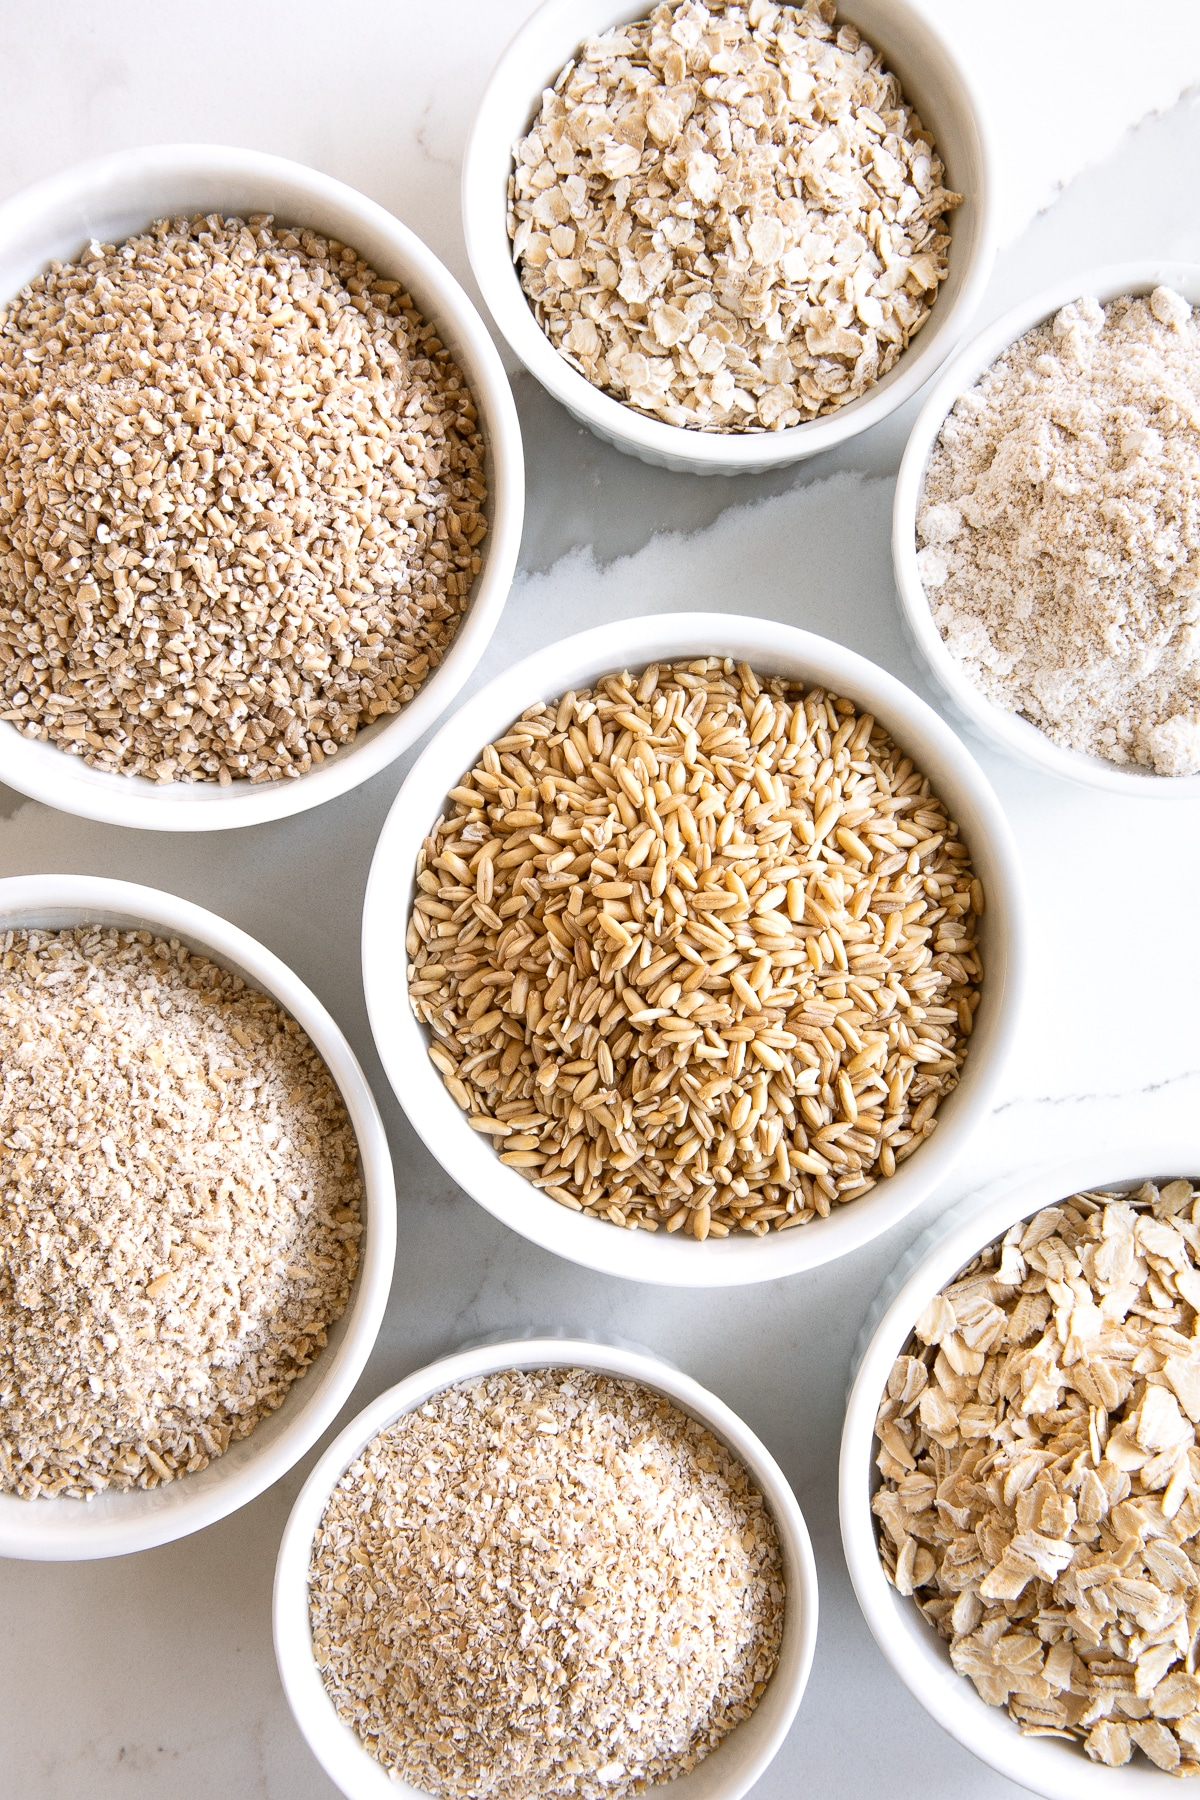 Small white ramekins filled with the different kinds of oats including rolled oats, groats, instant oats, steel-cut oats, scottish oats, oat bran, and oat flour.